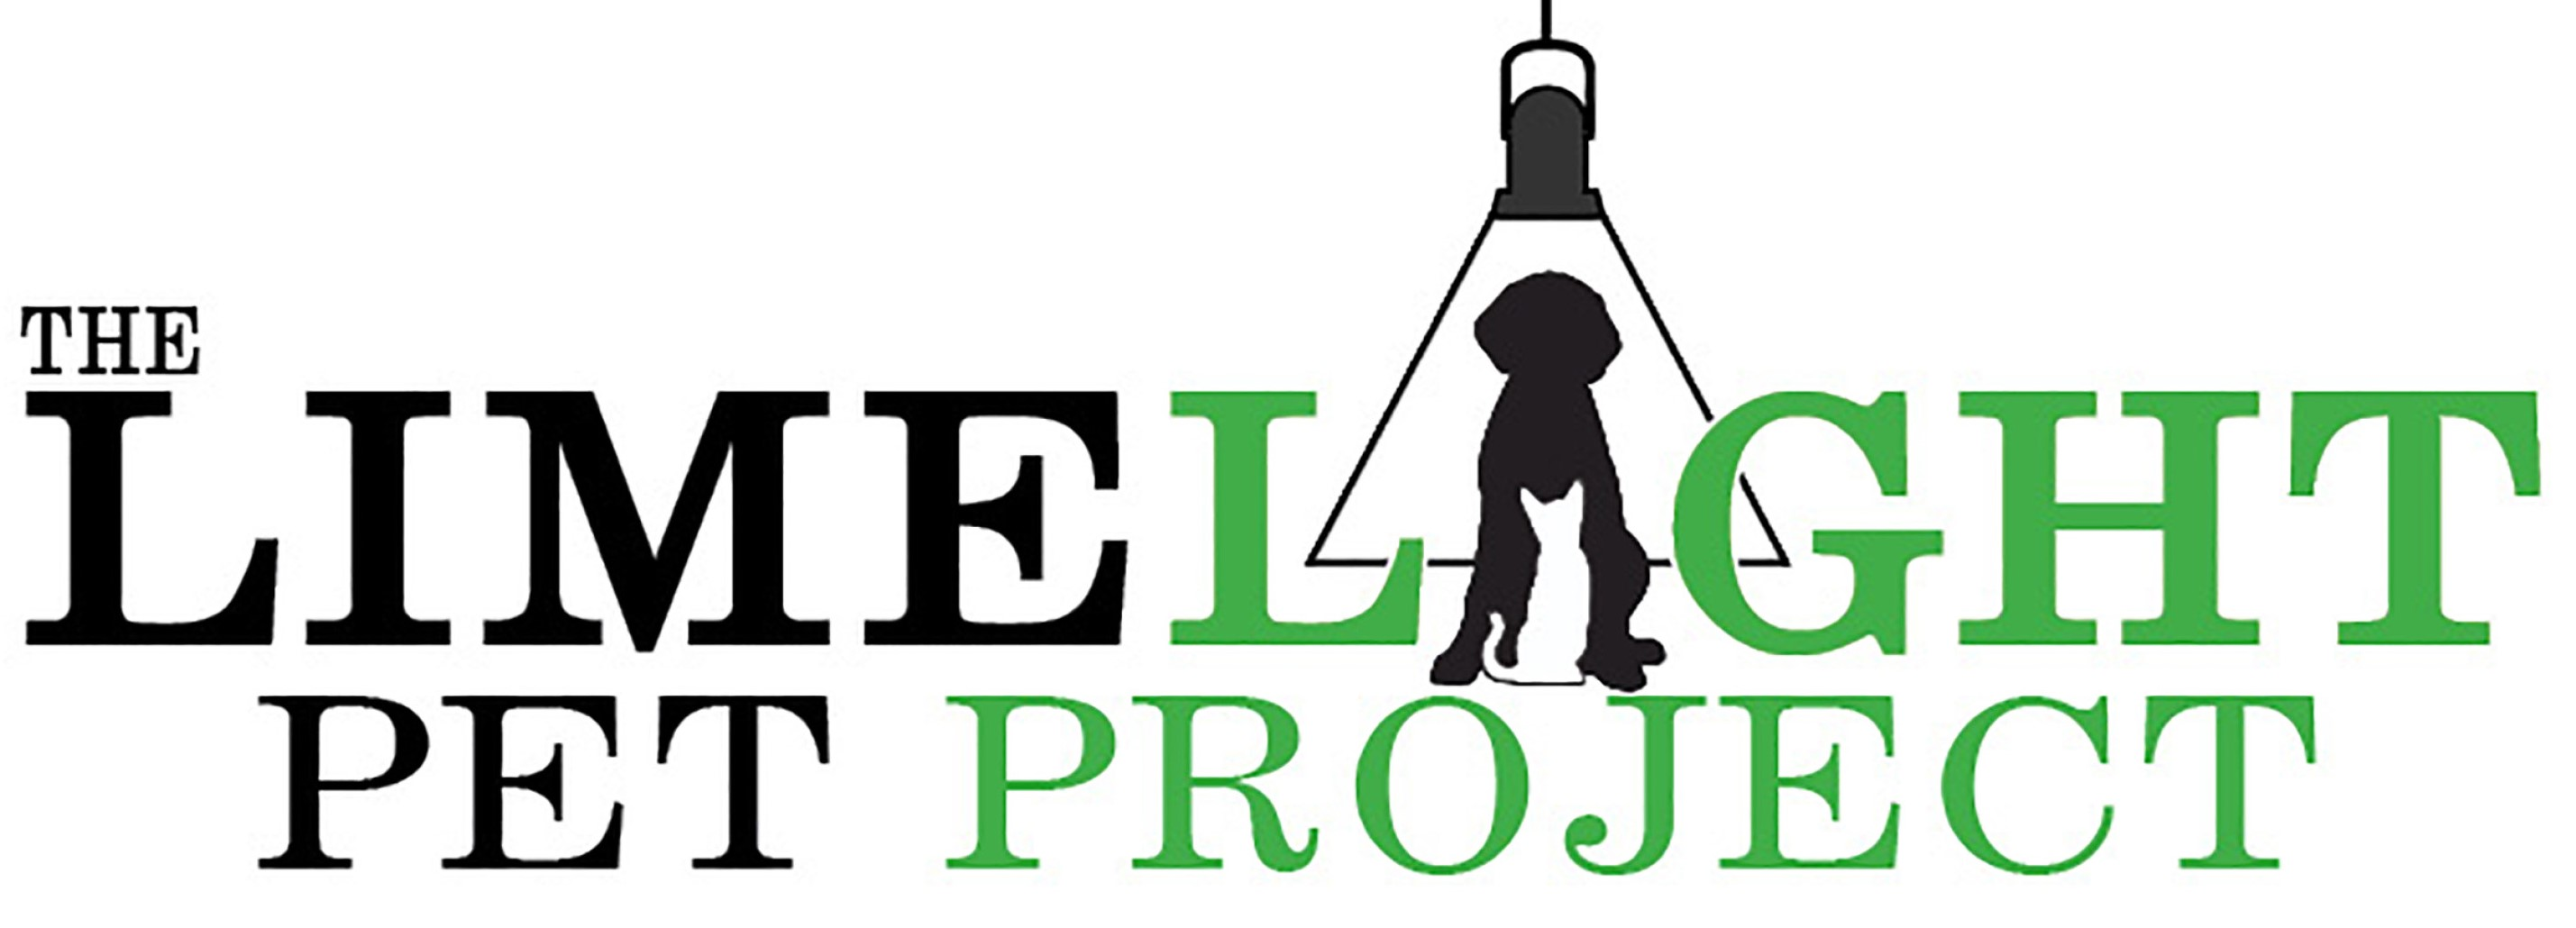 The Limelight Pet Project